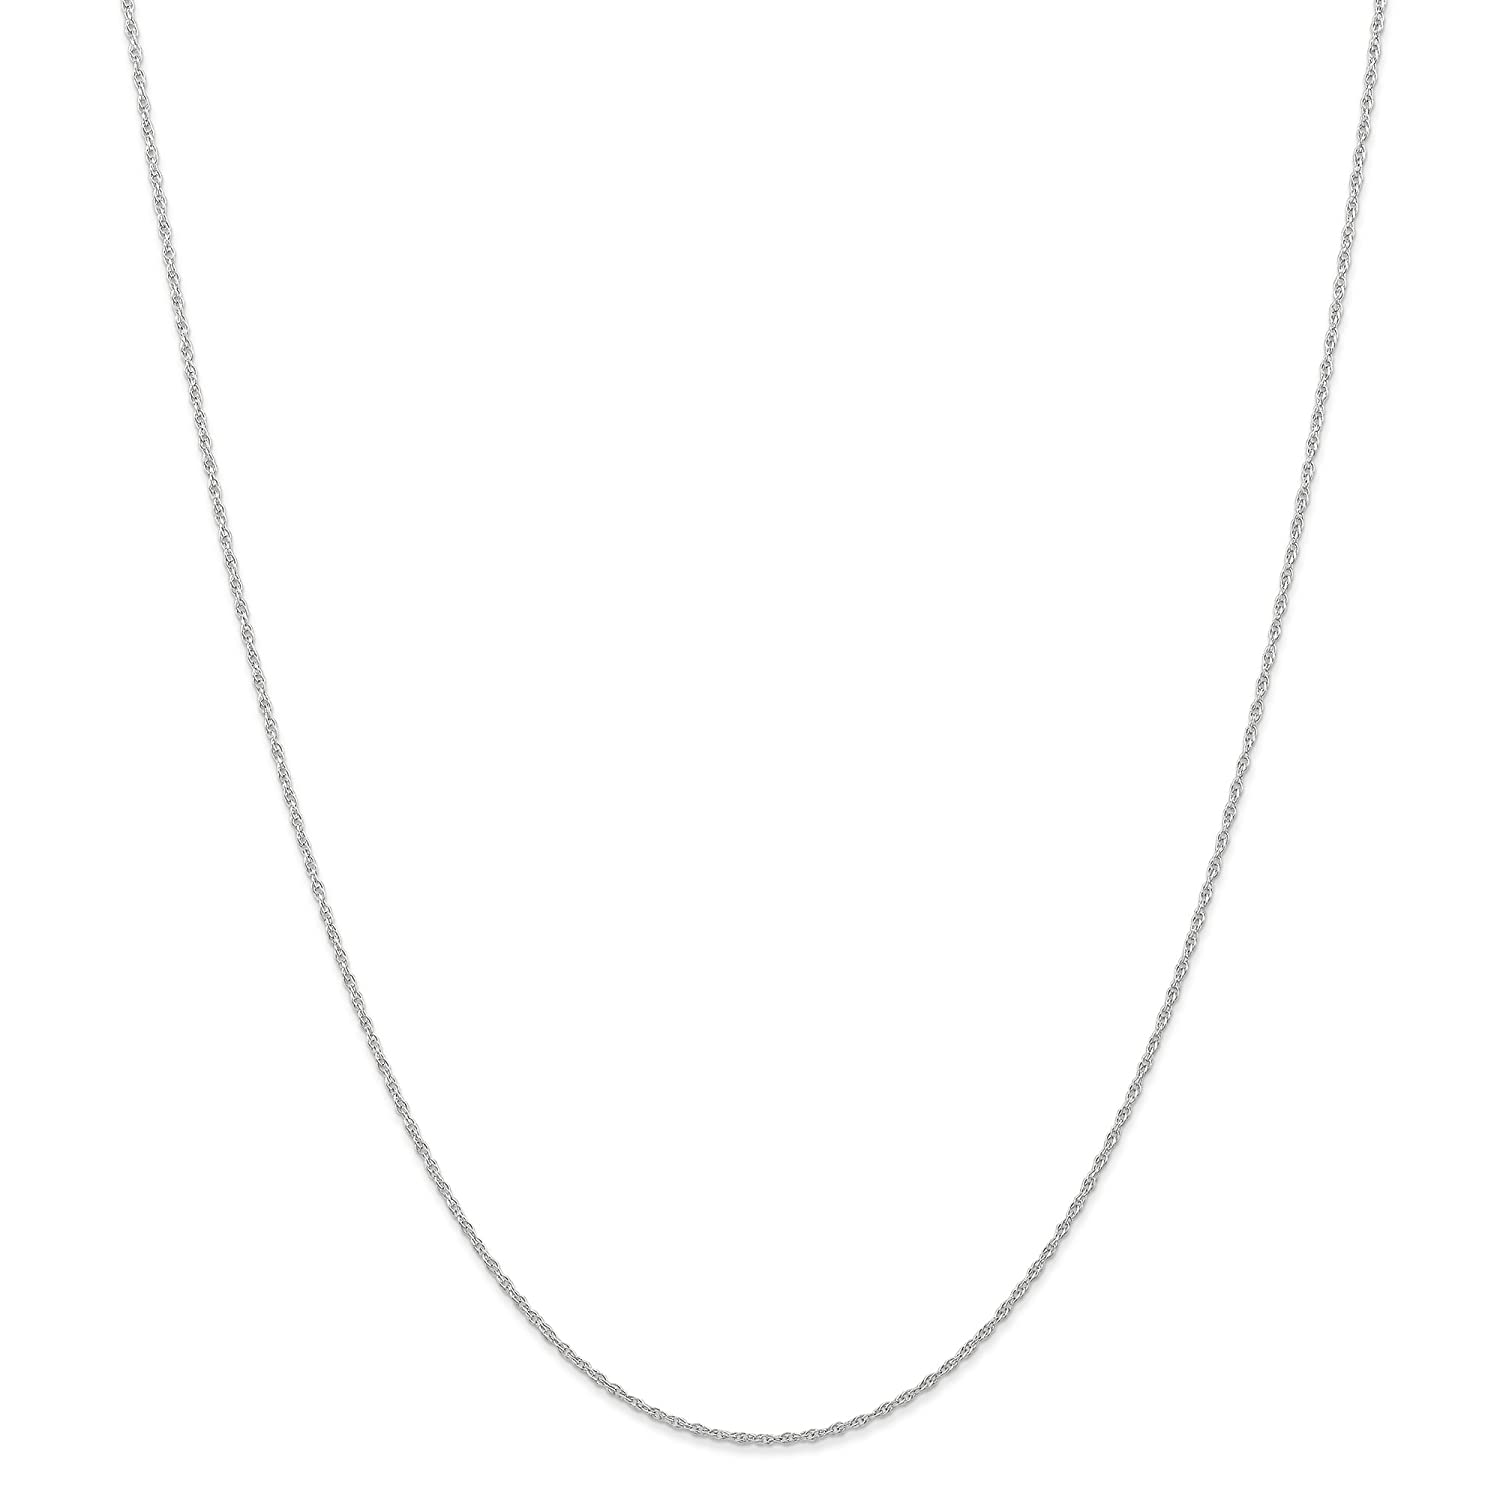 14k White Gold 0.95mm Spring Ring Carded Chain Necklace 18